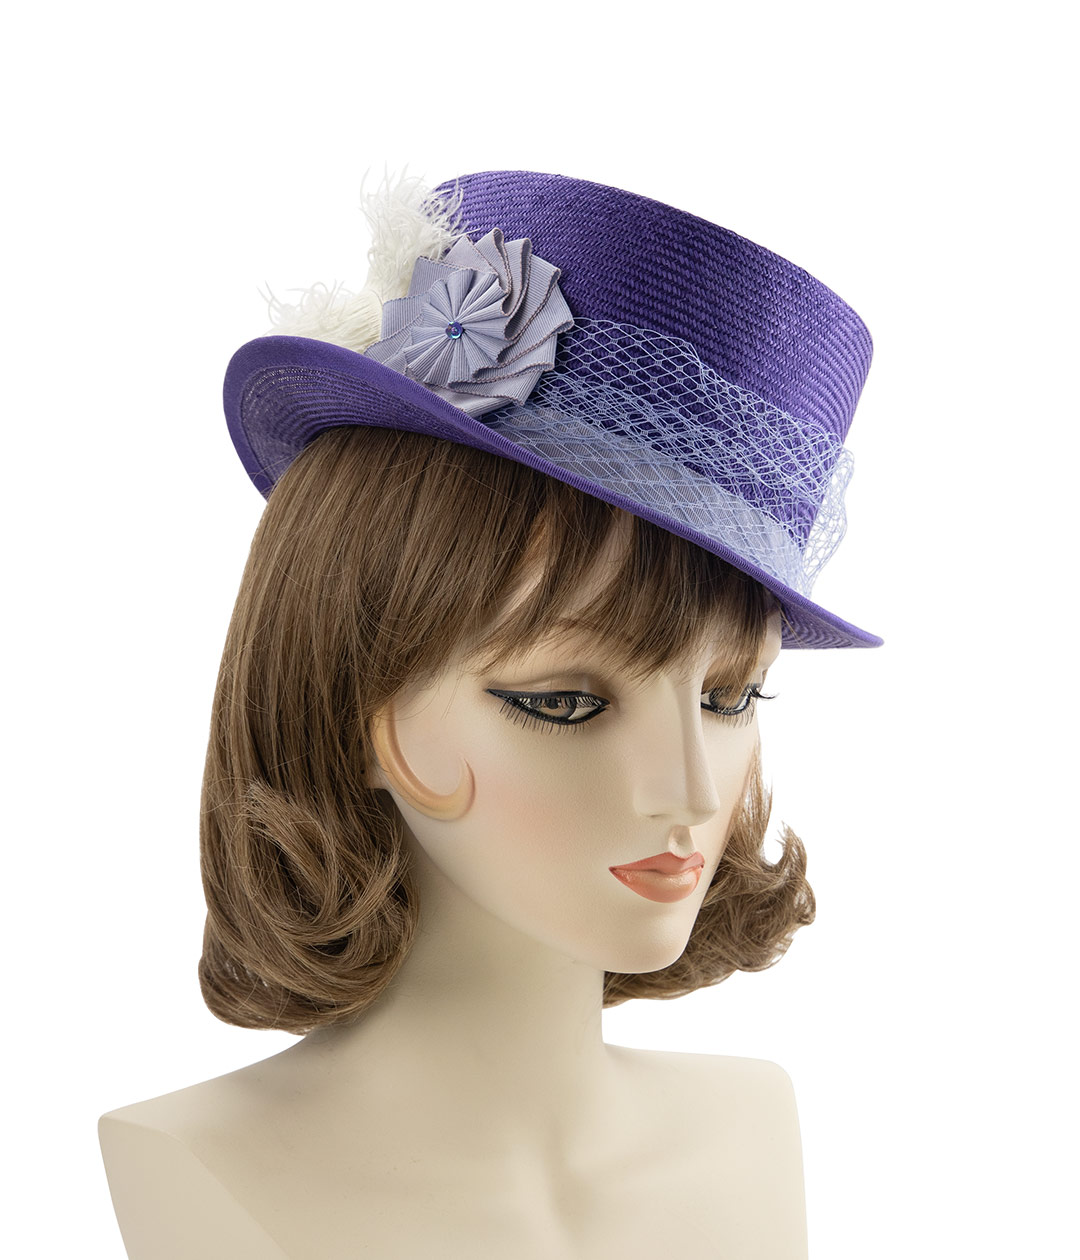 Parasisal straw top hat in purple with periwinkle blue veiling and ribbon cockade.